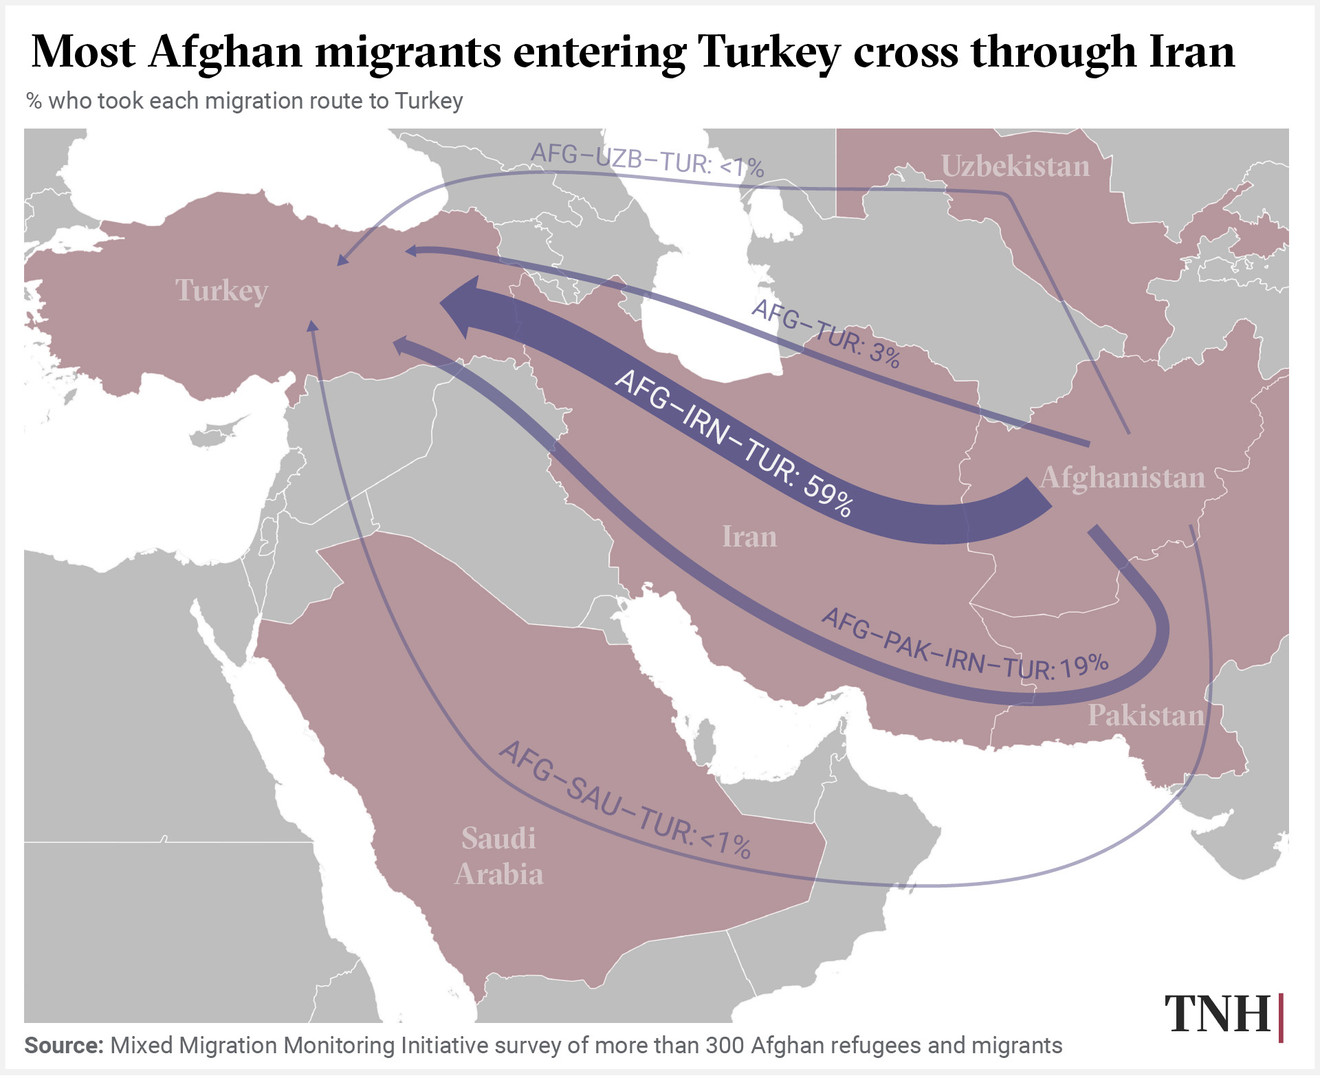 Most Afghan migrants entering Turkey cross through Iran